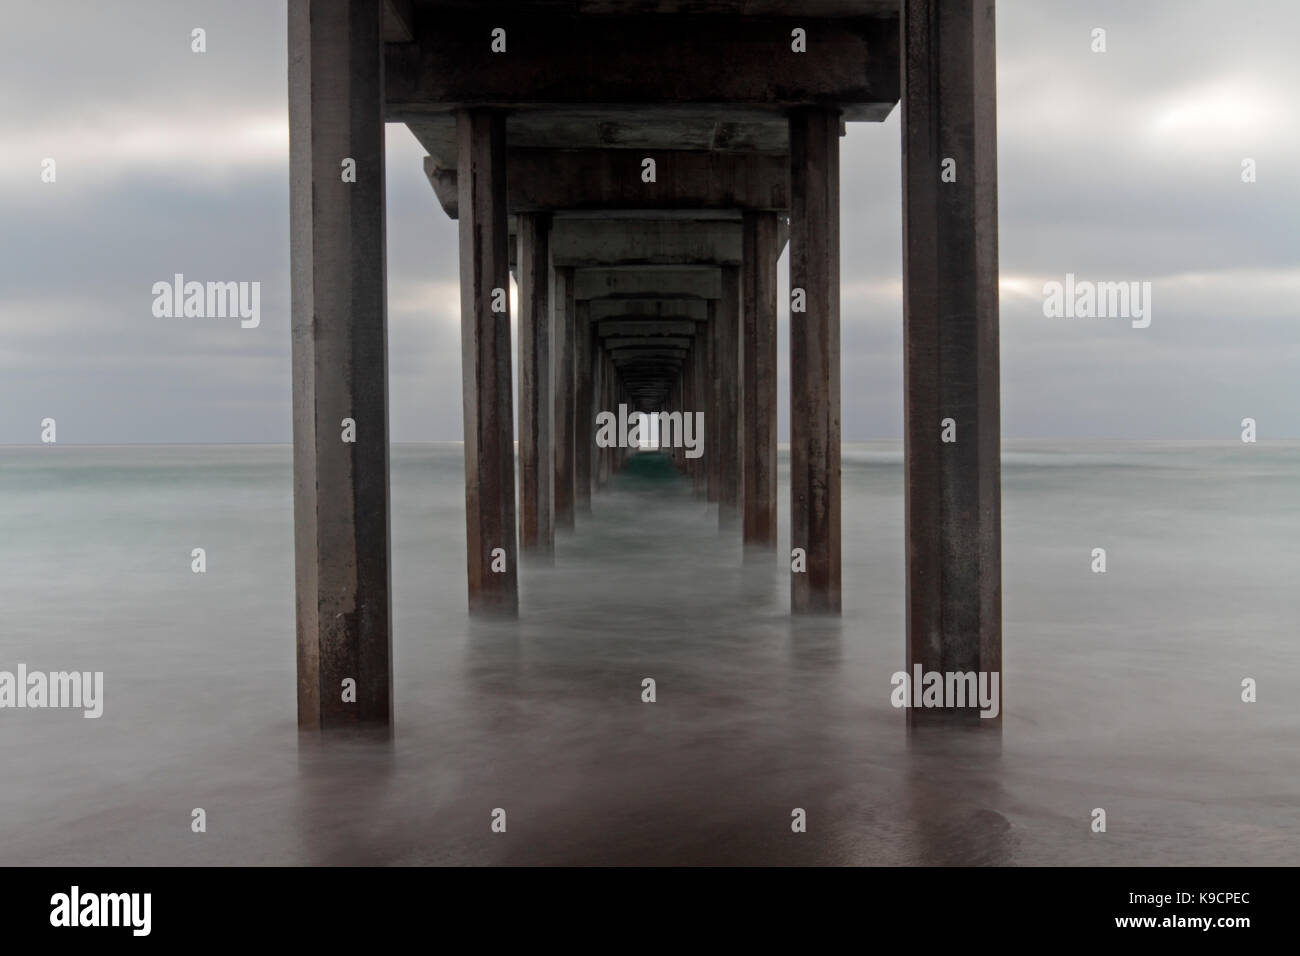 Long exposure seascape of Scripps Pier from the beach in San Diego  California with misty water and artistic perspective. - Stock Image